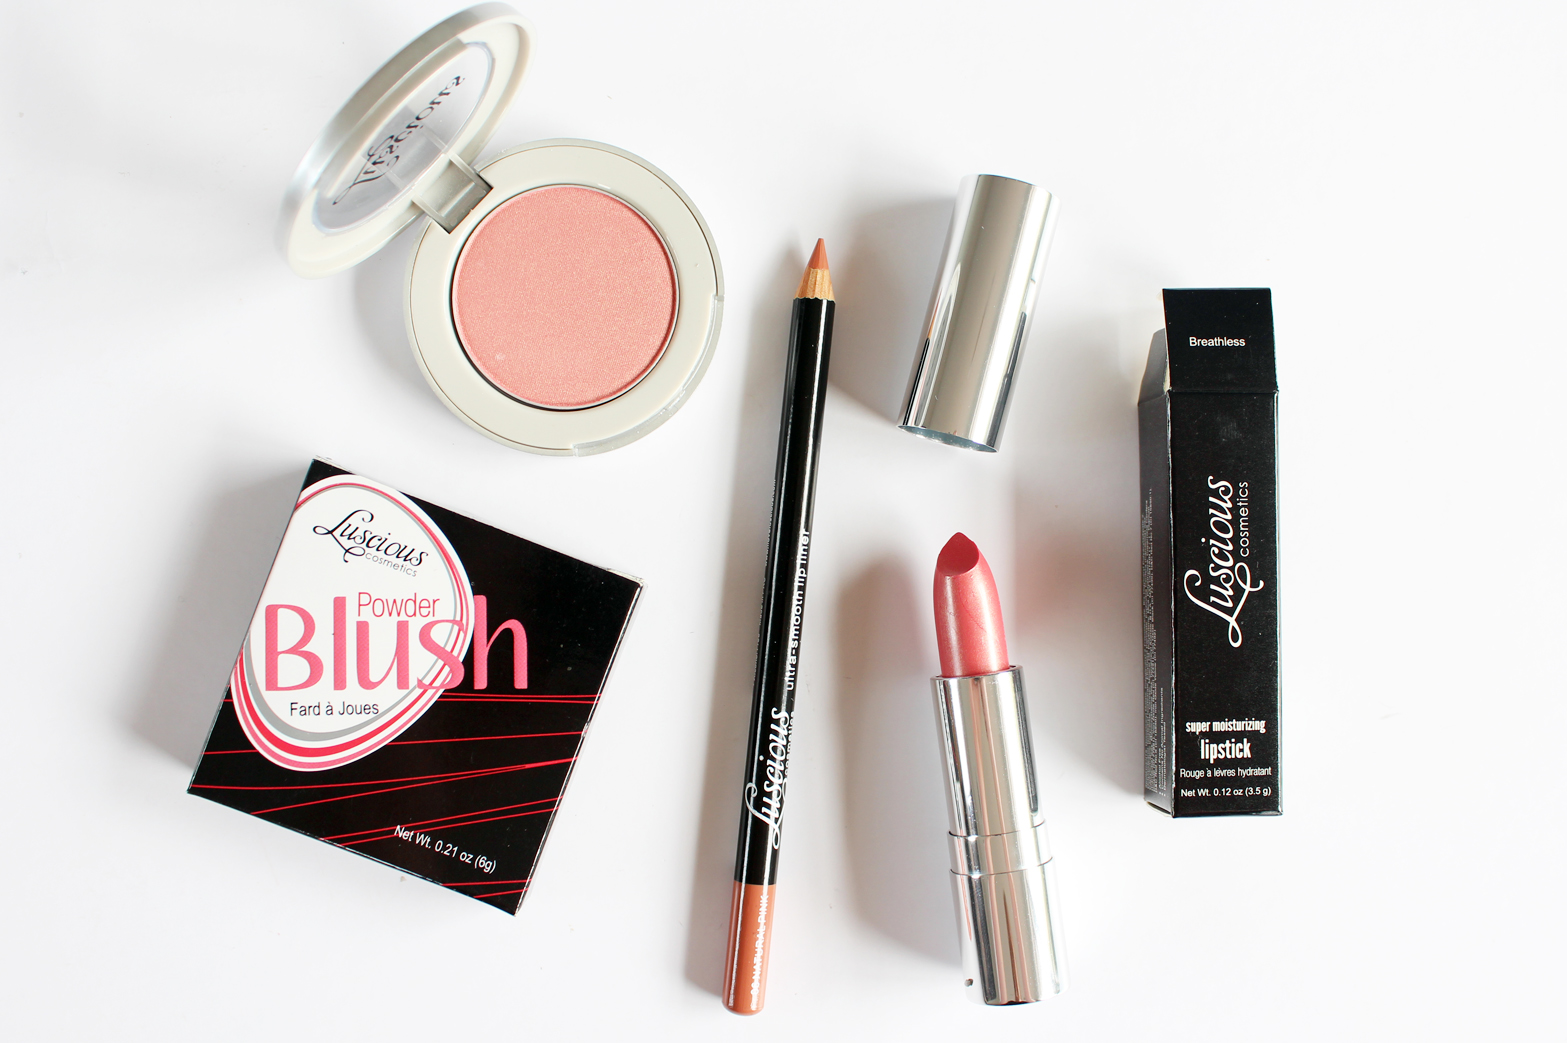 SEPHORA NEW ZEALAND | Haul - Reviews + Swatches - Luscious Cosmetics Rose Gold Value Set, Powder Blush in Champagne, Ultra Smooth Lip Liner in Natural Pink + Sheer Moisturizing Lipstick in Breathless - CassandraMyee